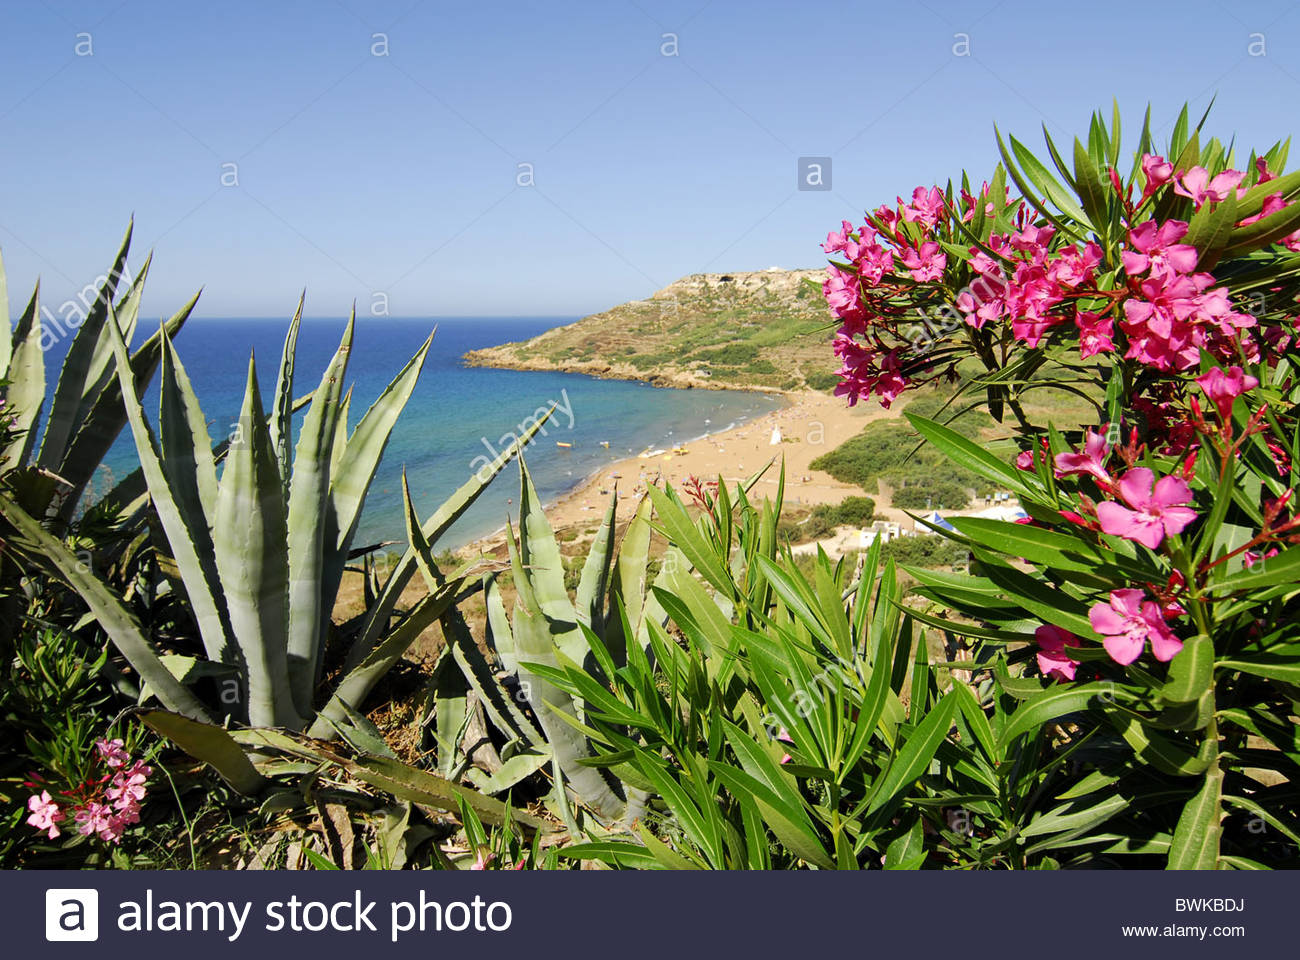 Garden with a sea view, beach at the Rambla Bay, Gozo Island, Malta ...